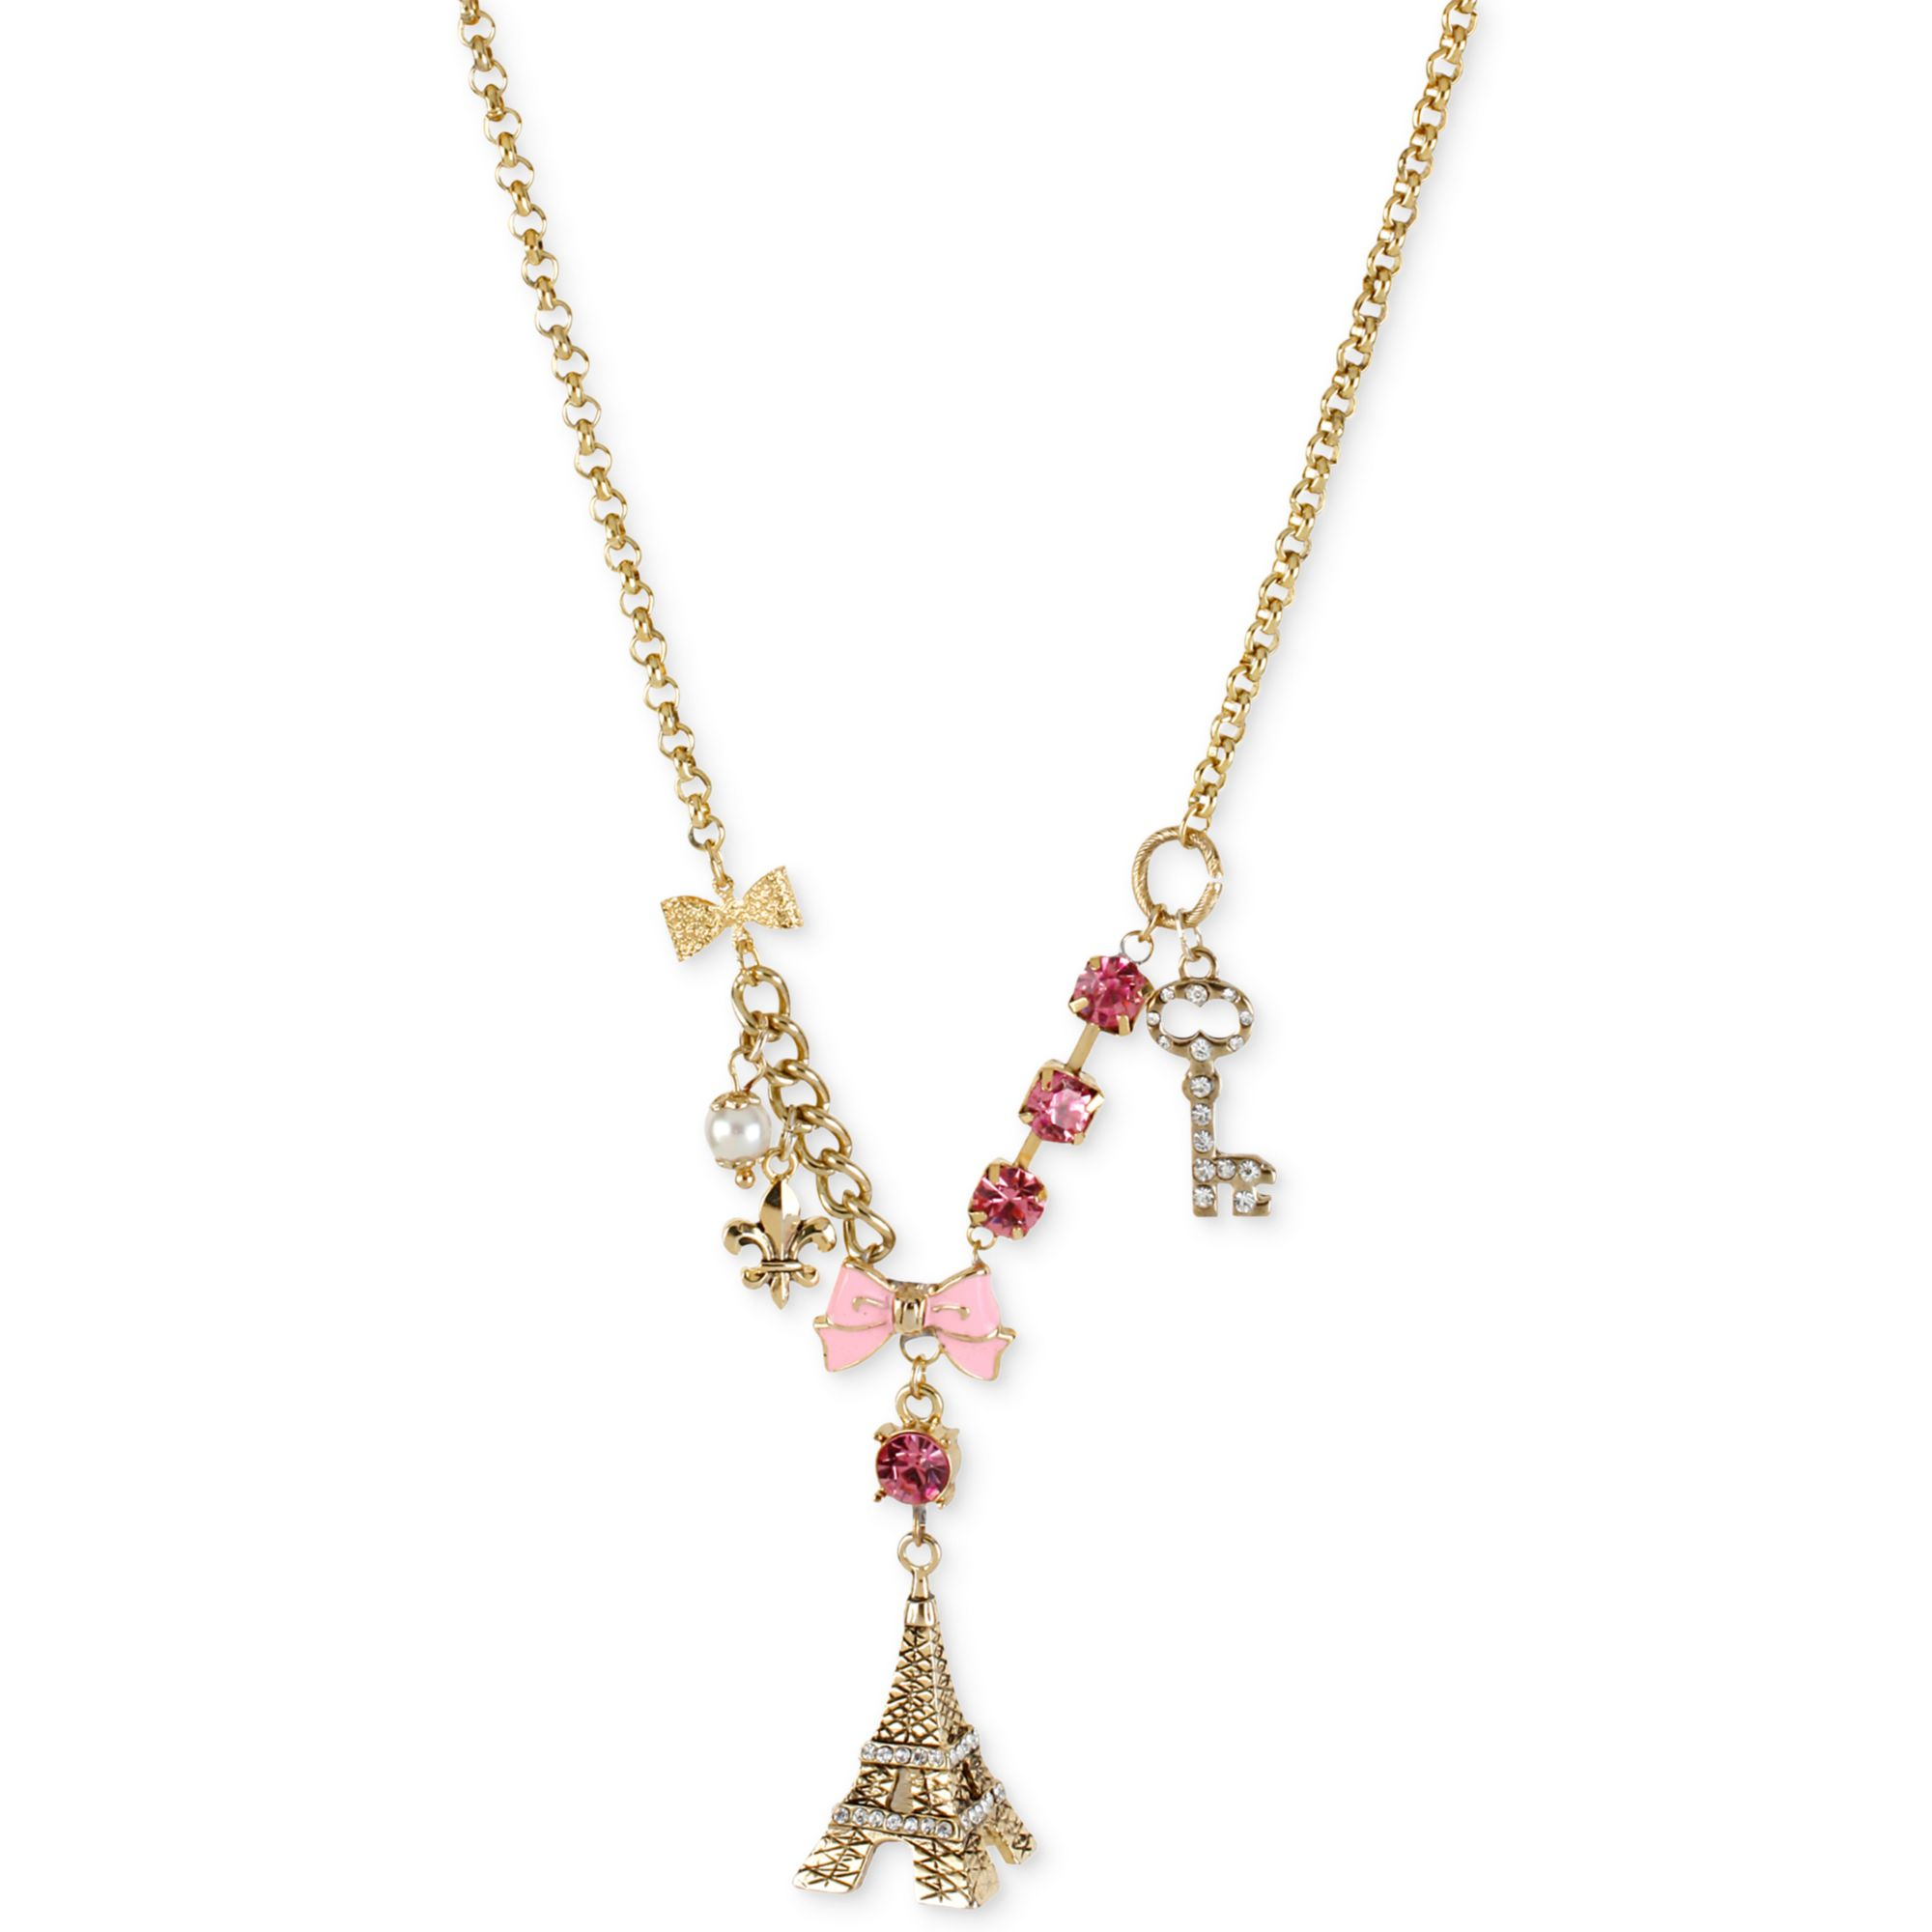 Betsey Johnson Antique Goldtone Eiffel Tower Multicharm